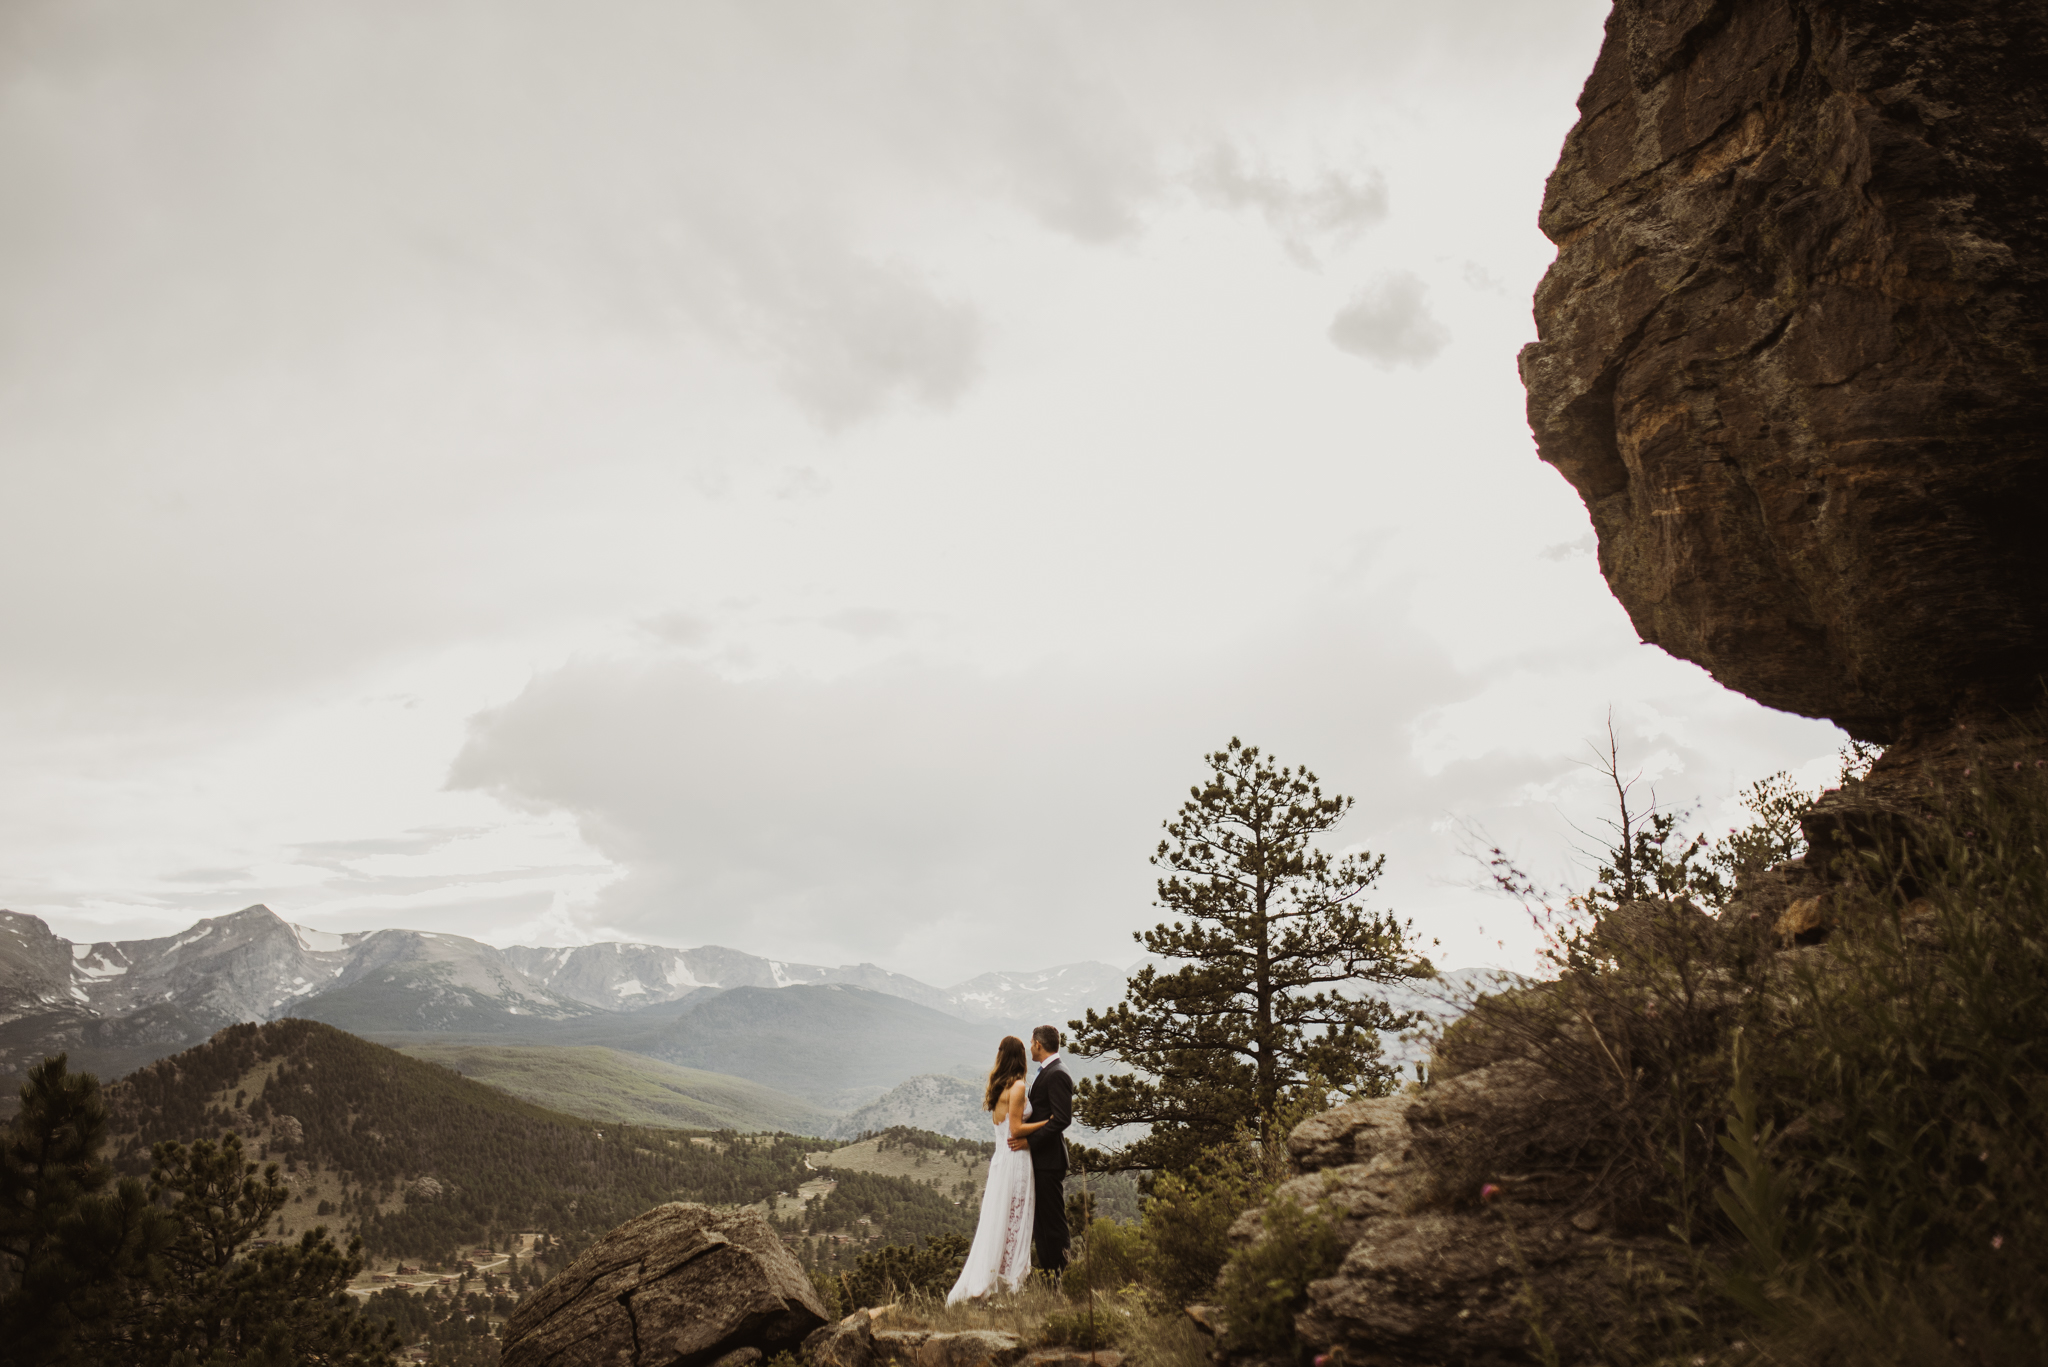 ©Isaiah + Taylor Photography - Estes National Park Adventure Elopement, Colorado Rockies-117.jpg